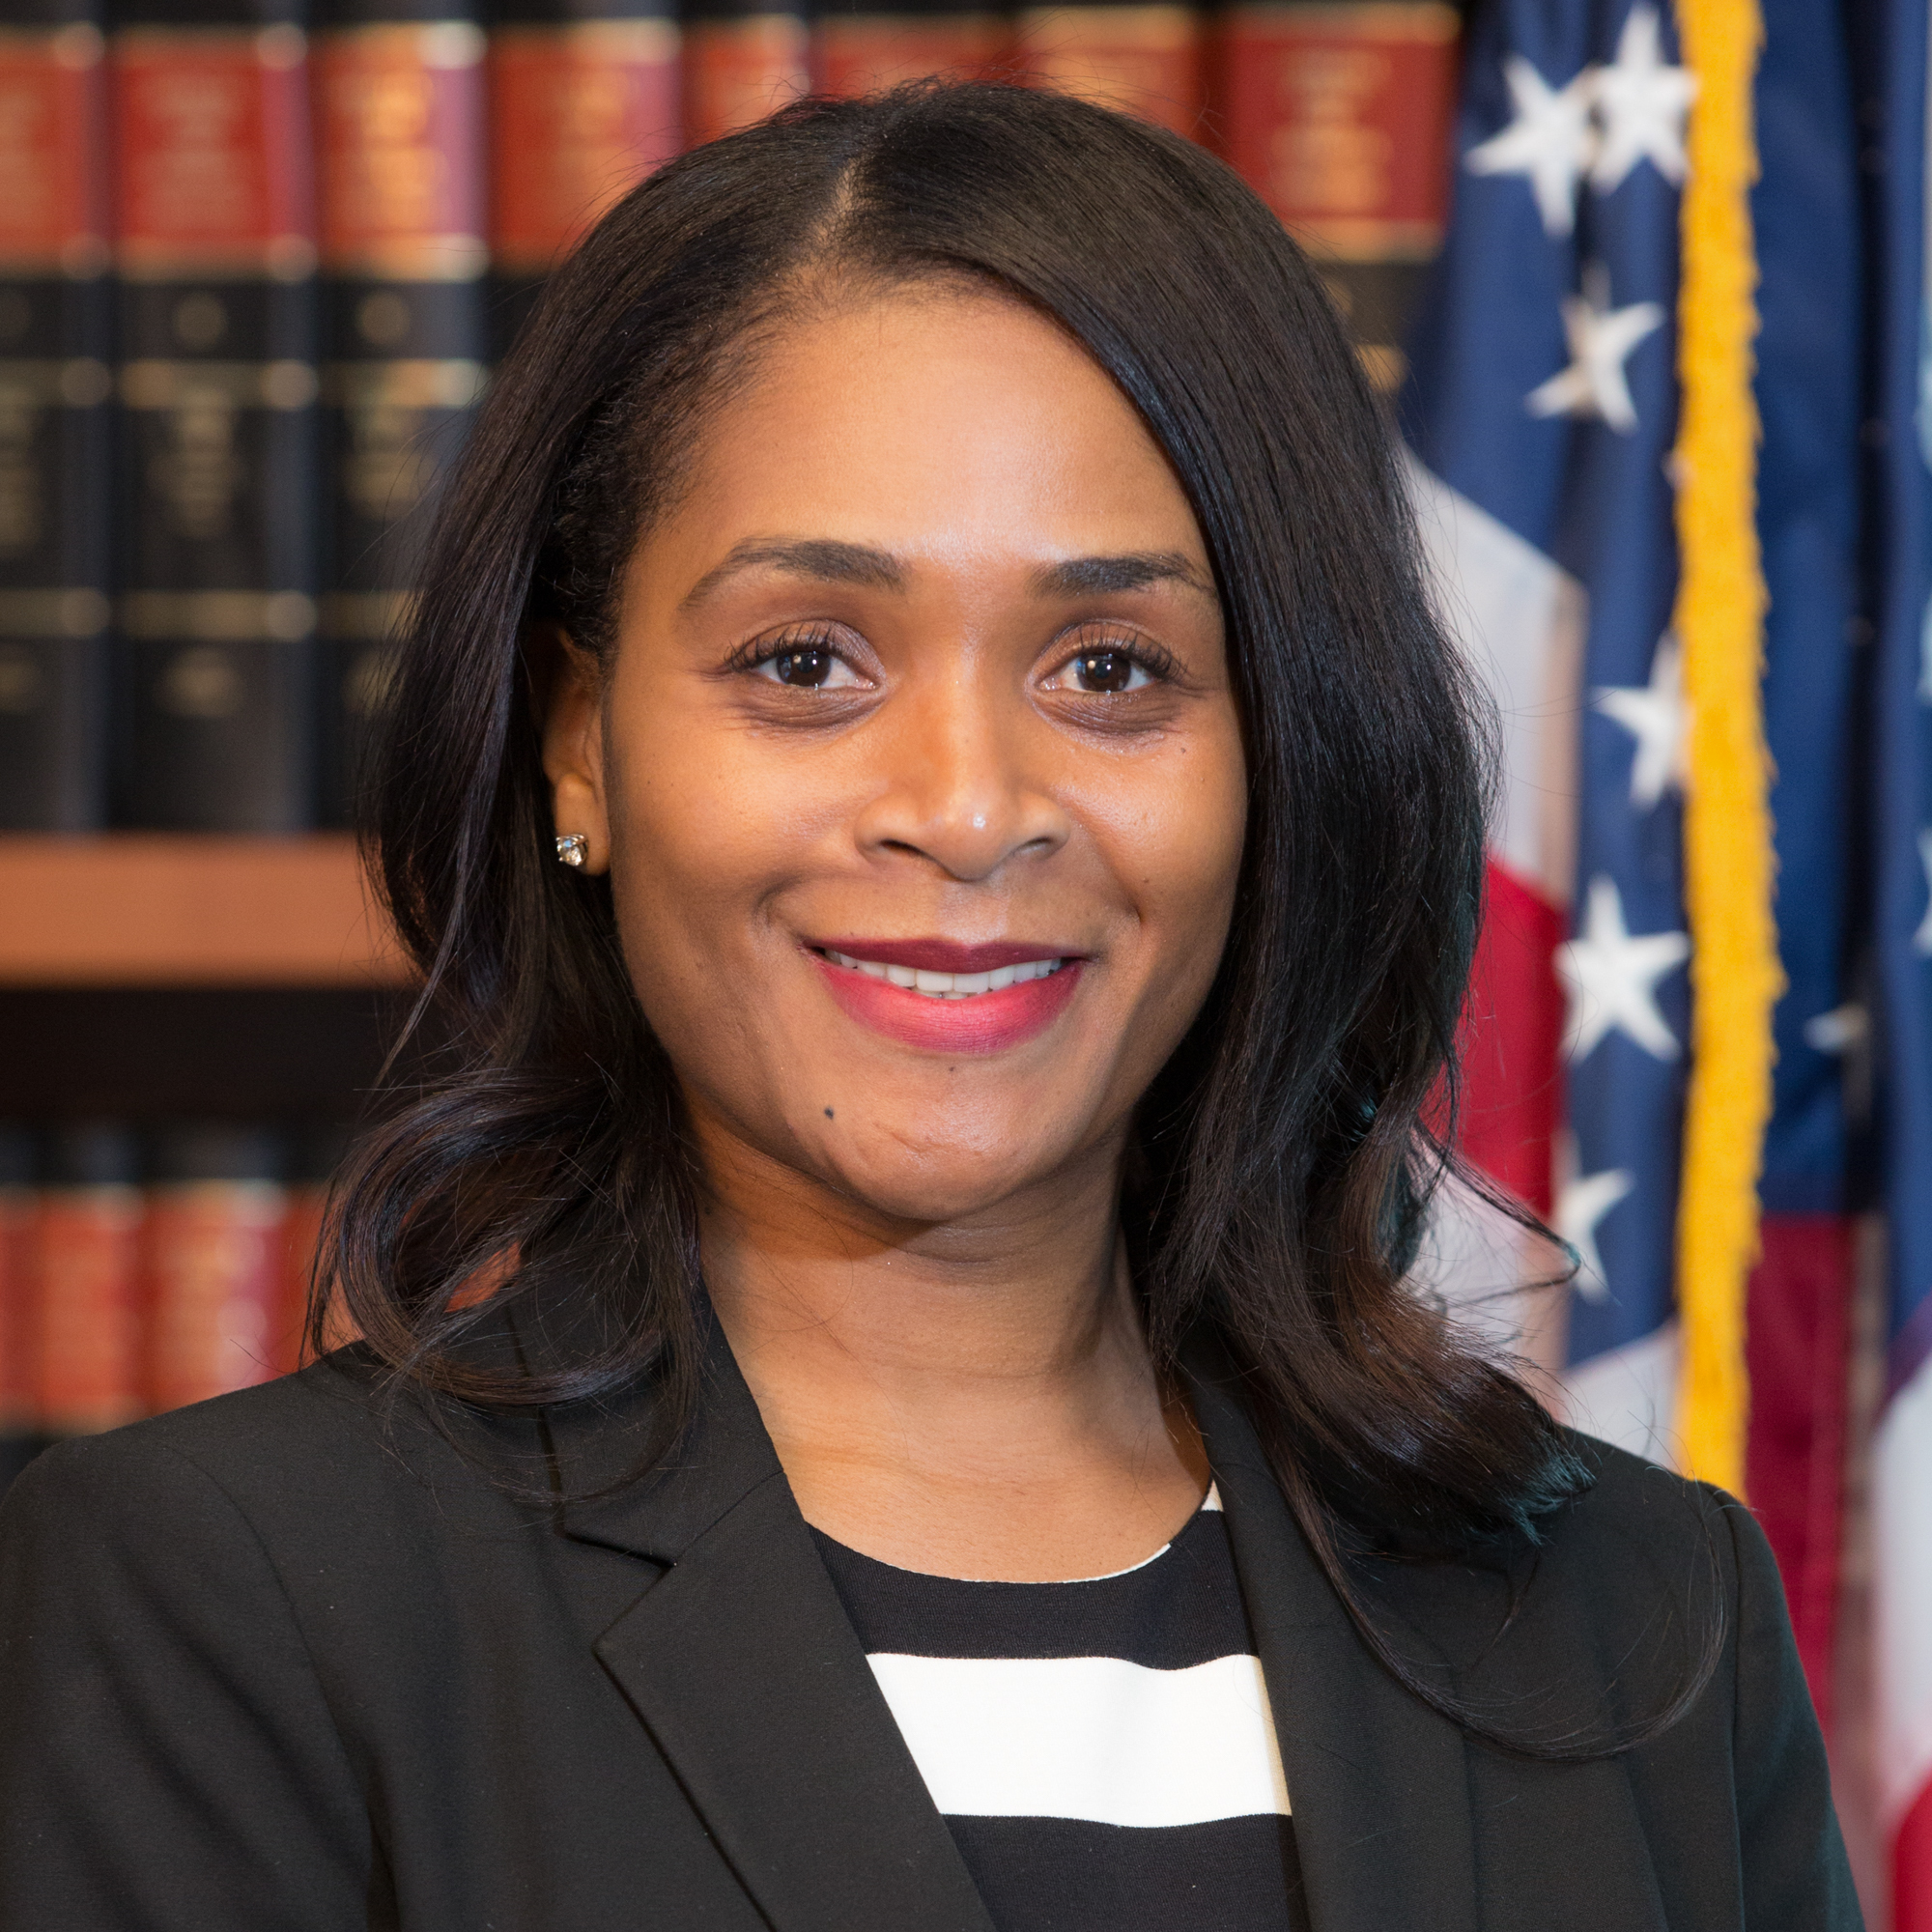 Kimberly Carroll, Chief Deputy Clerk